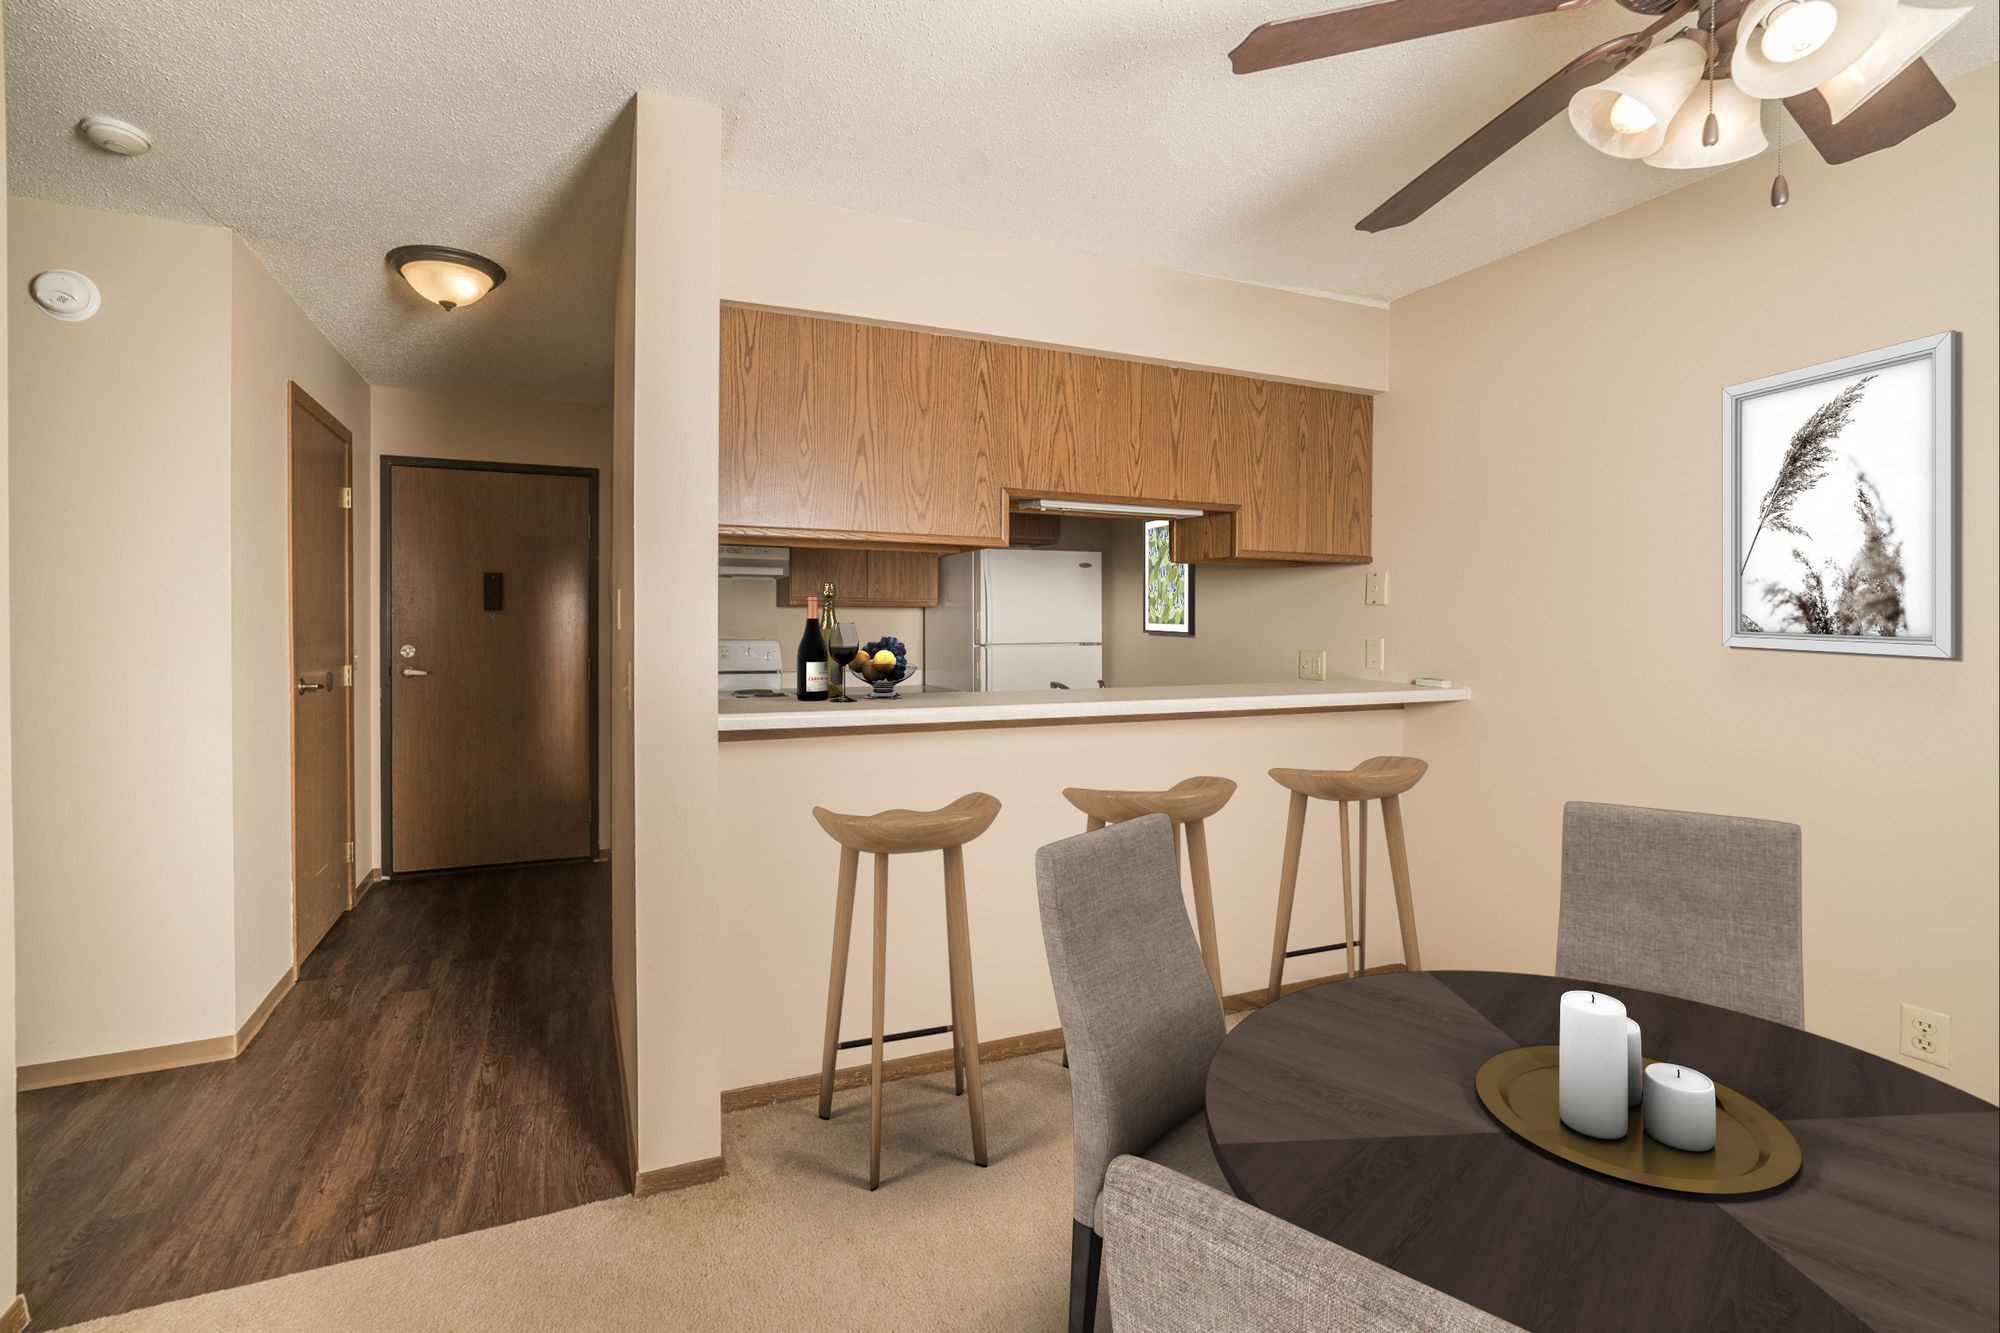 Apartments Near Augie Beadle West Apartments for Augustana College Students in Sioux Falls, SD